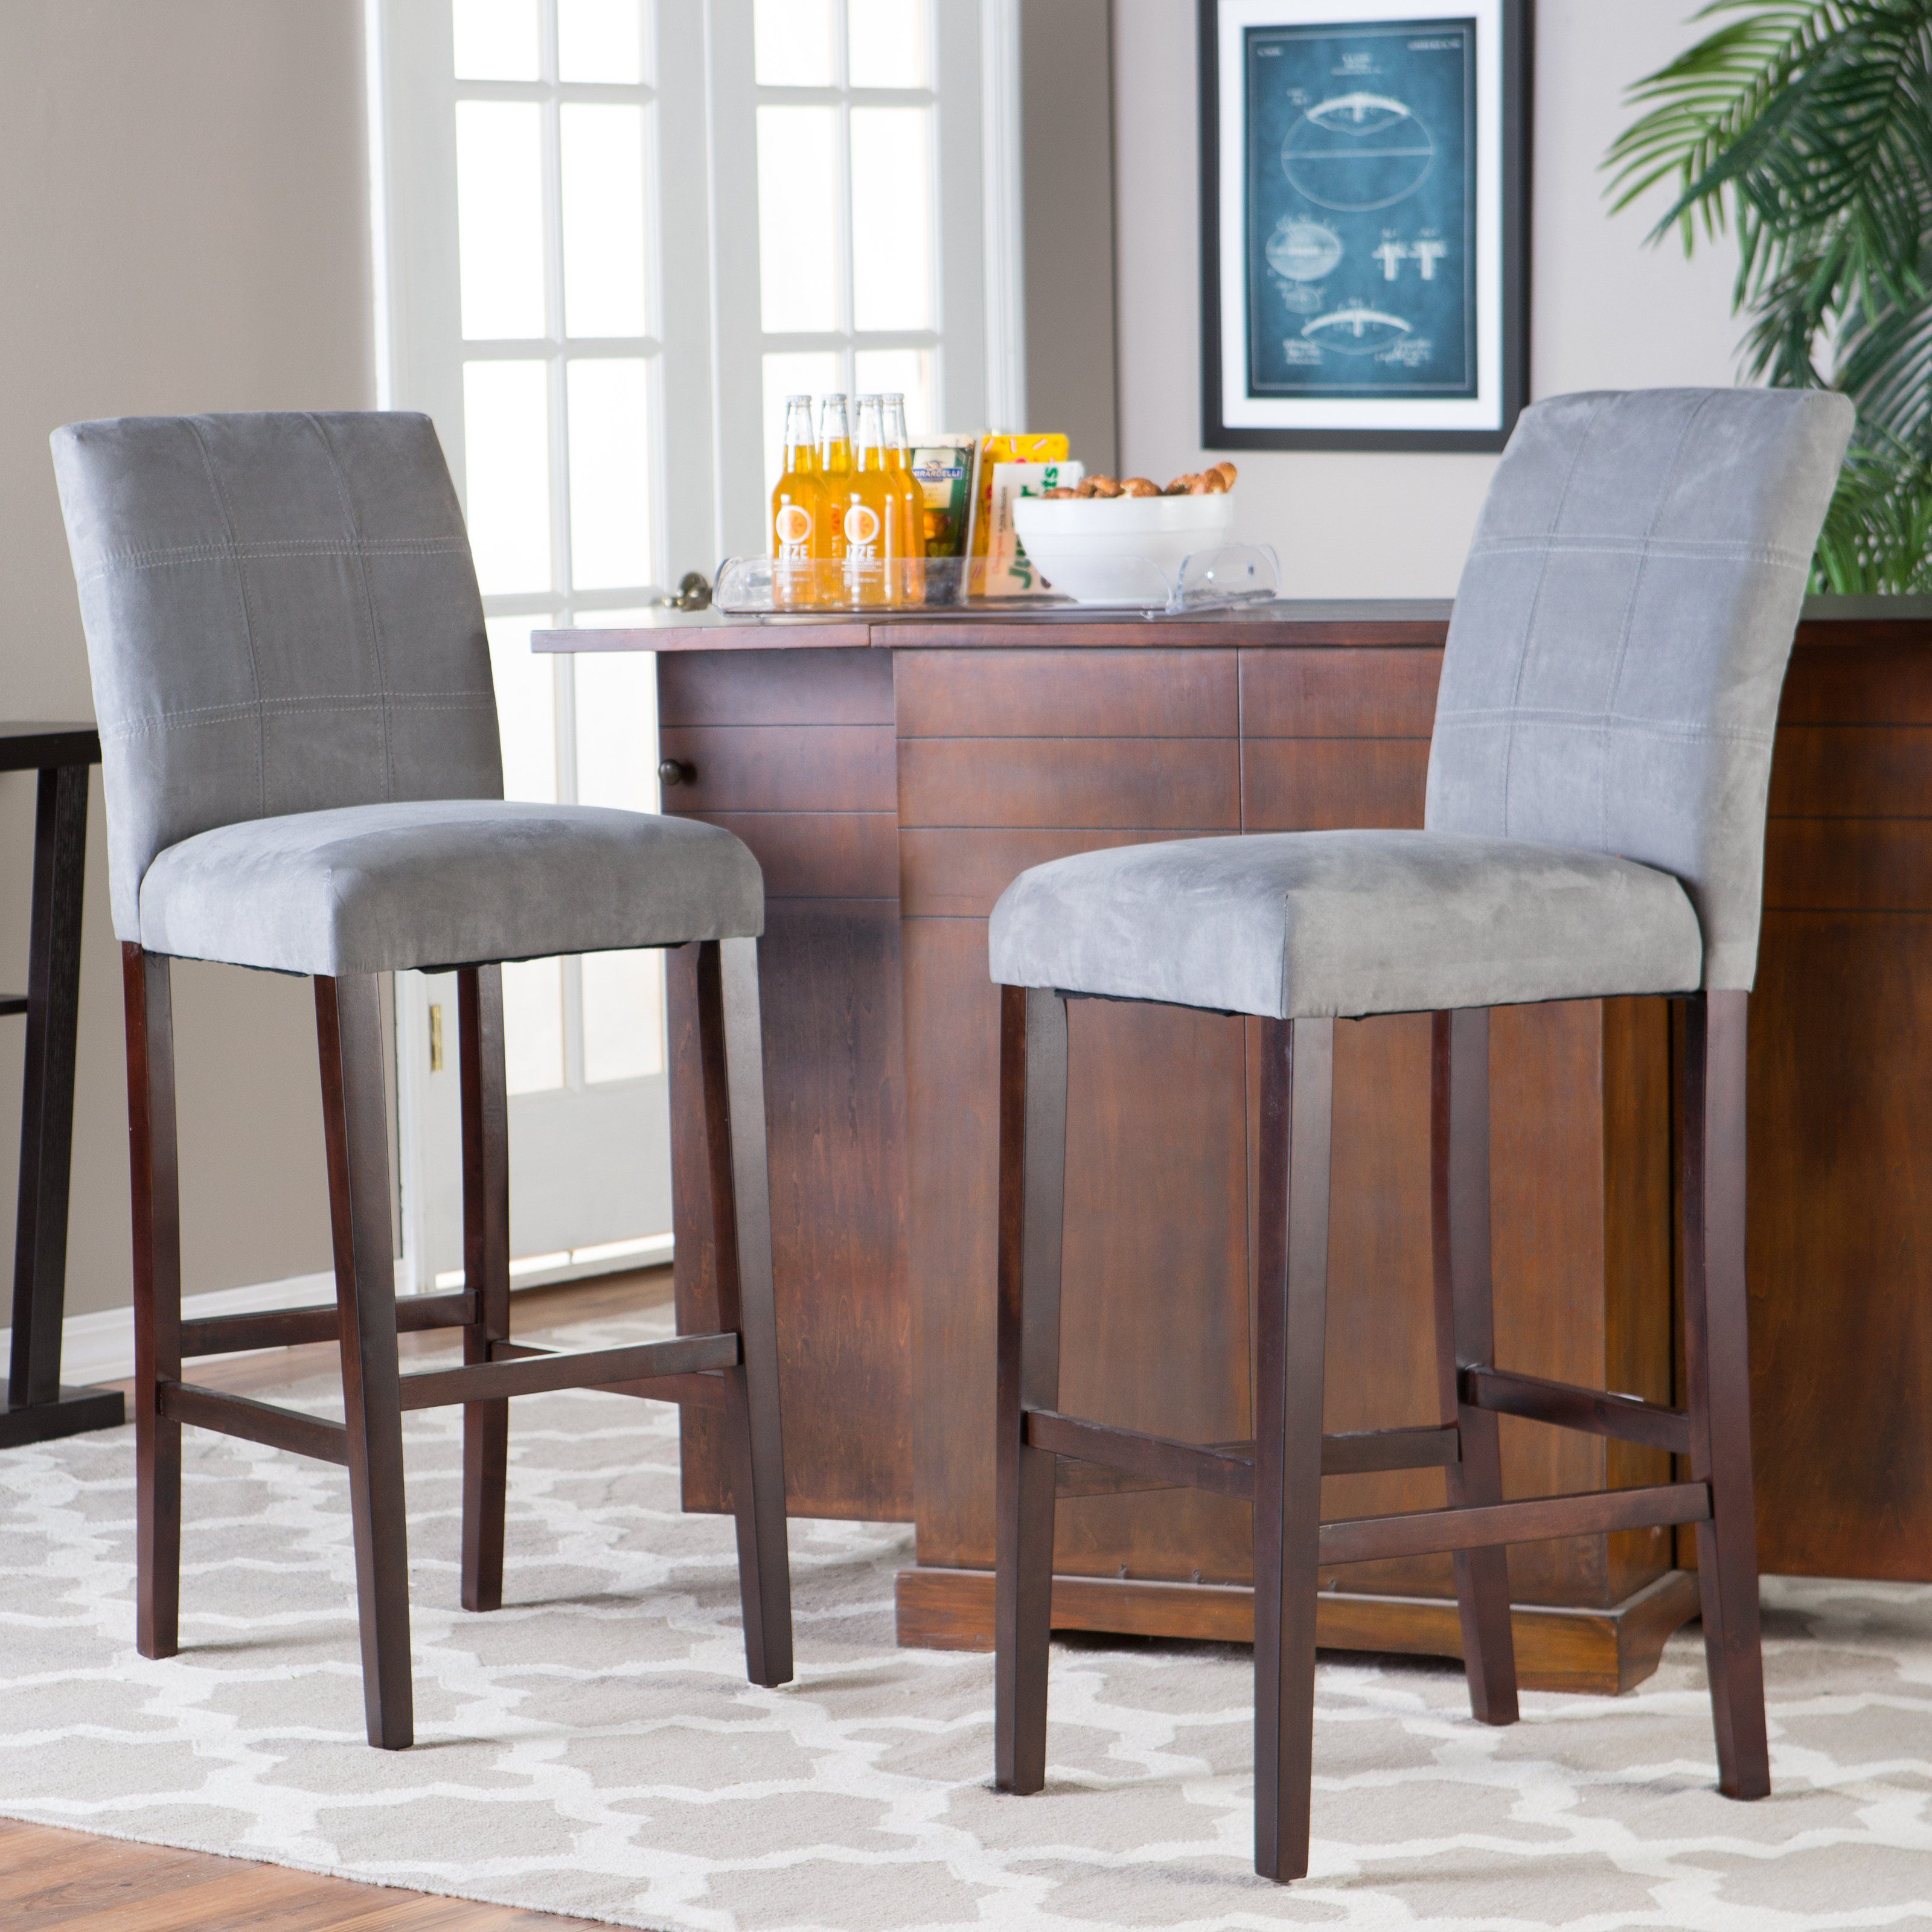 Palazzo Extra Tall Barstool - Grey - Set of 2 - Just right for ...